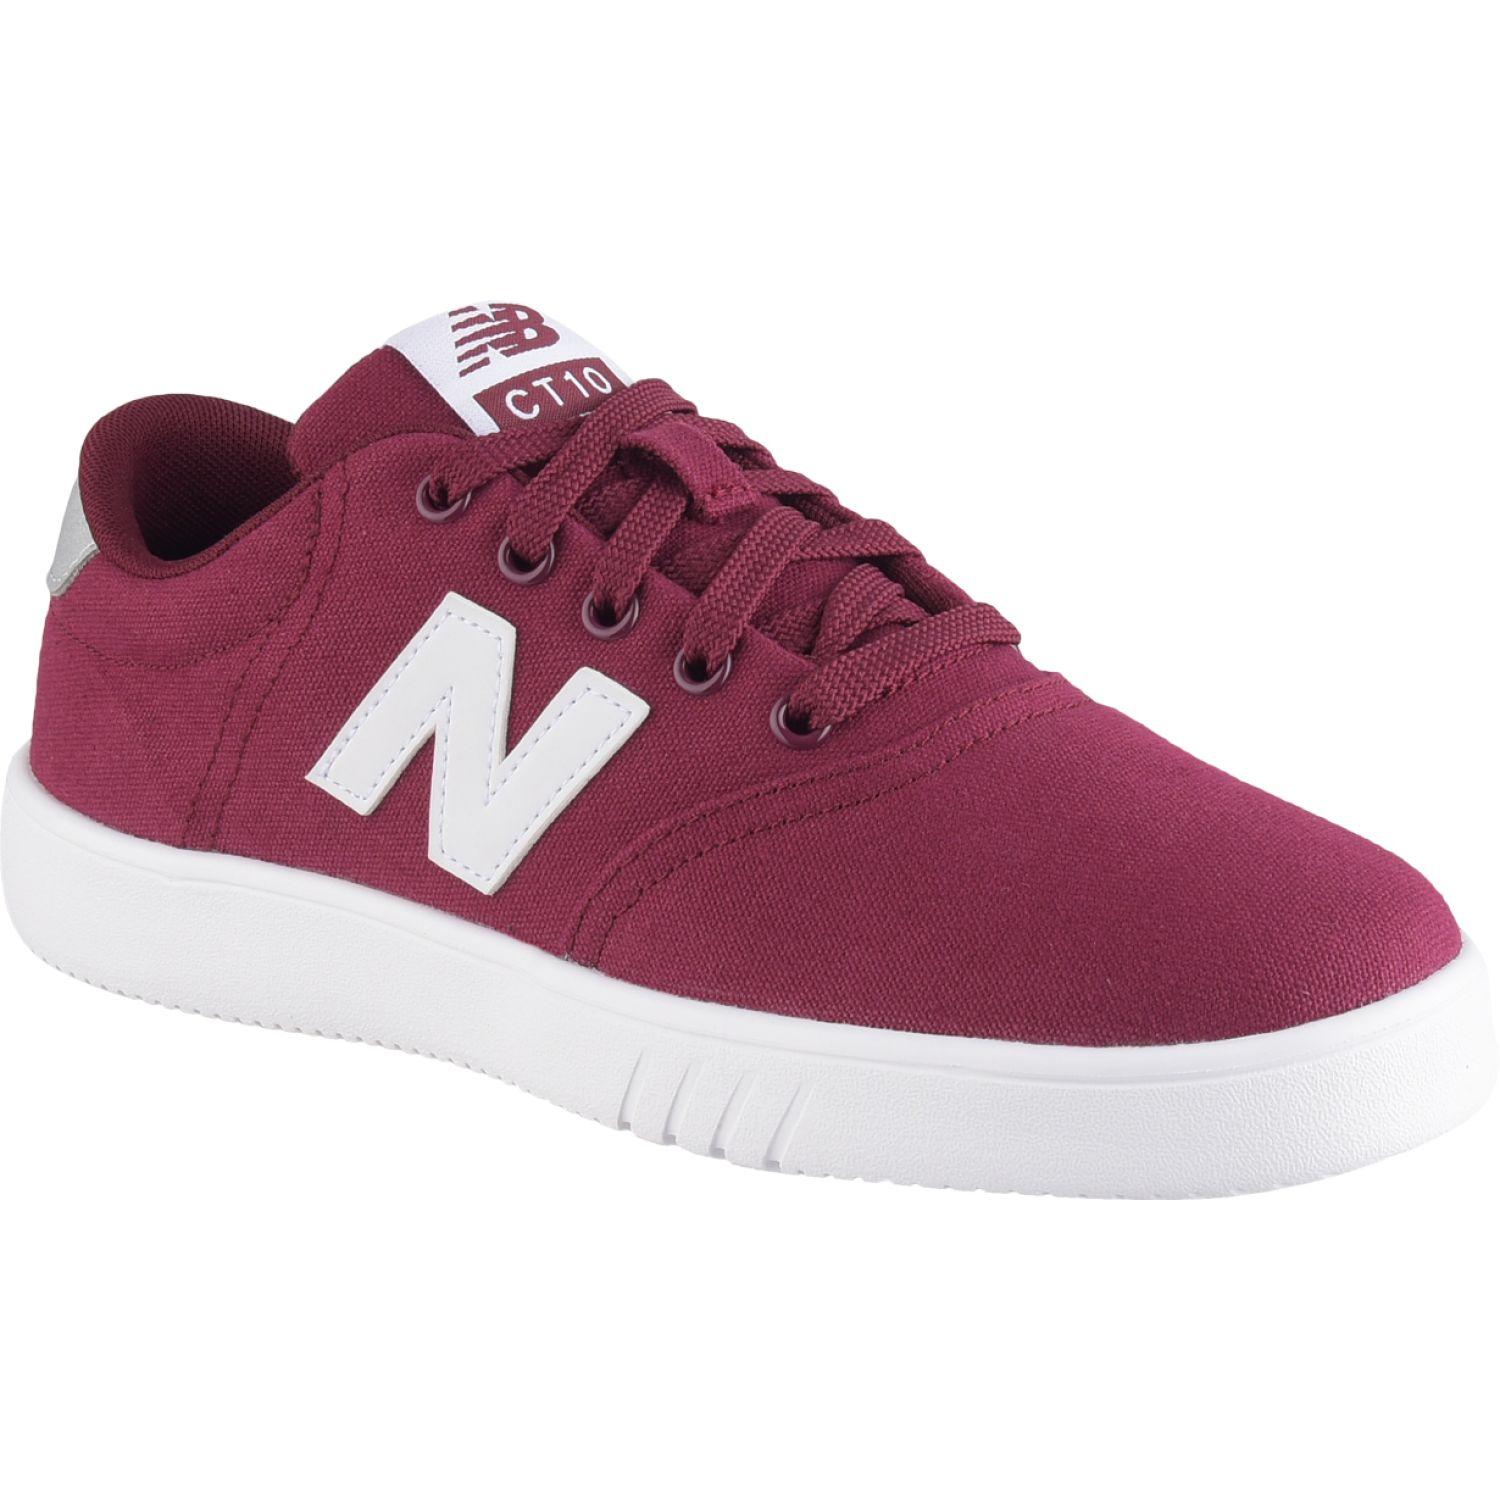 New Balance CT10 Rojo / blanco Walking